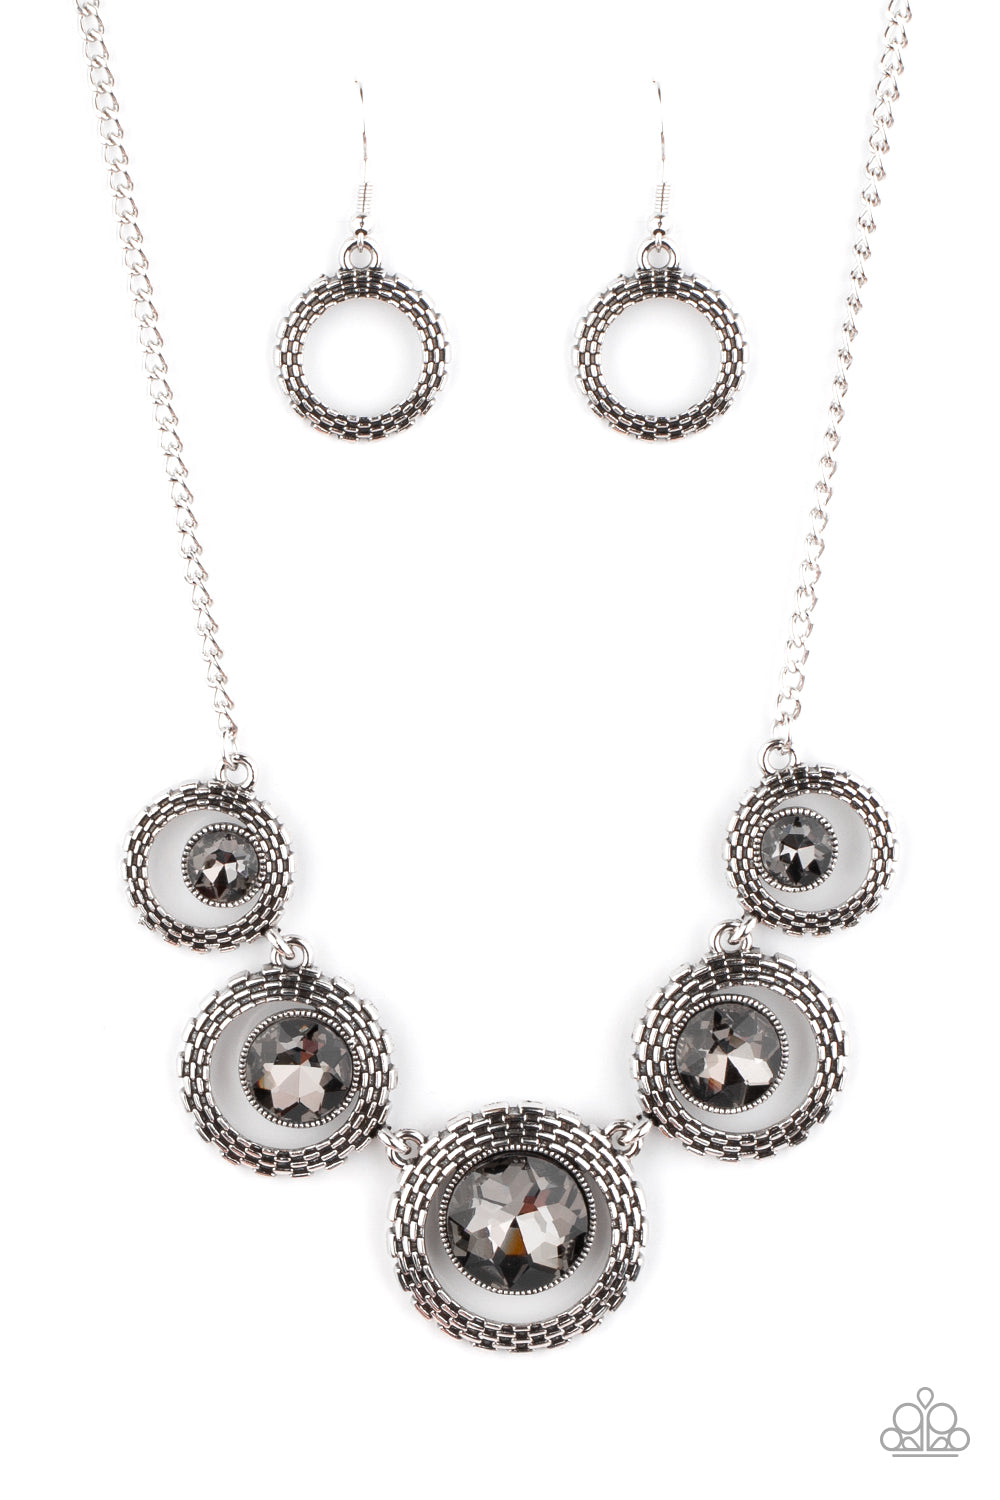 five-dollar-jewelry-pixel-perfect-silver-necklace-paparazzi-accessories